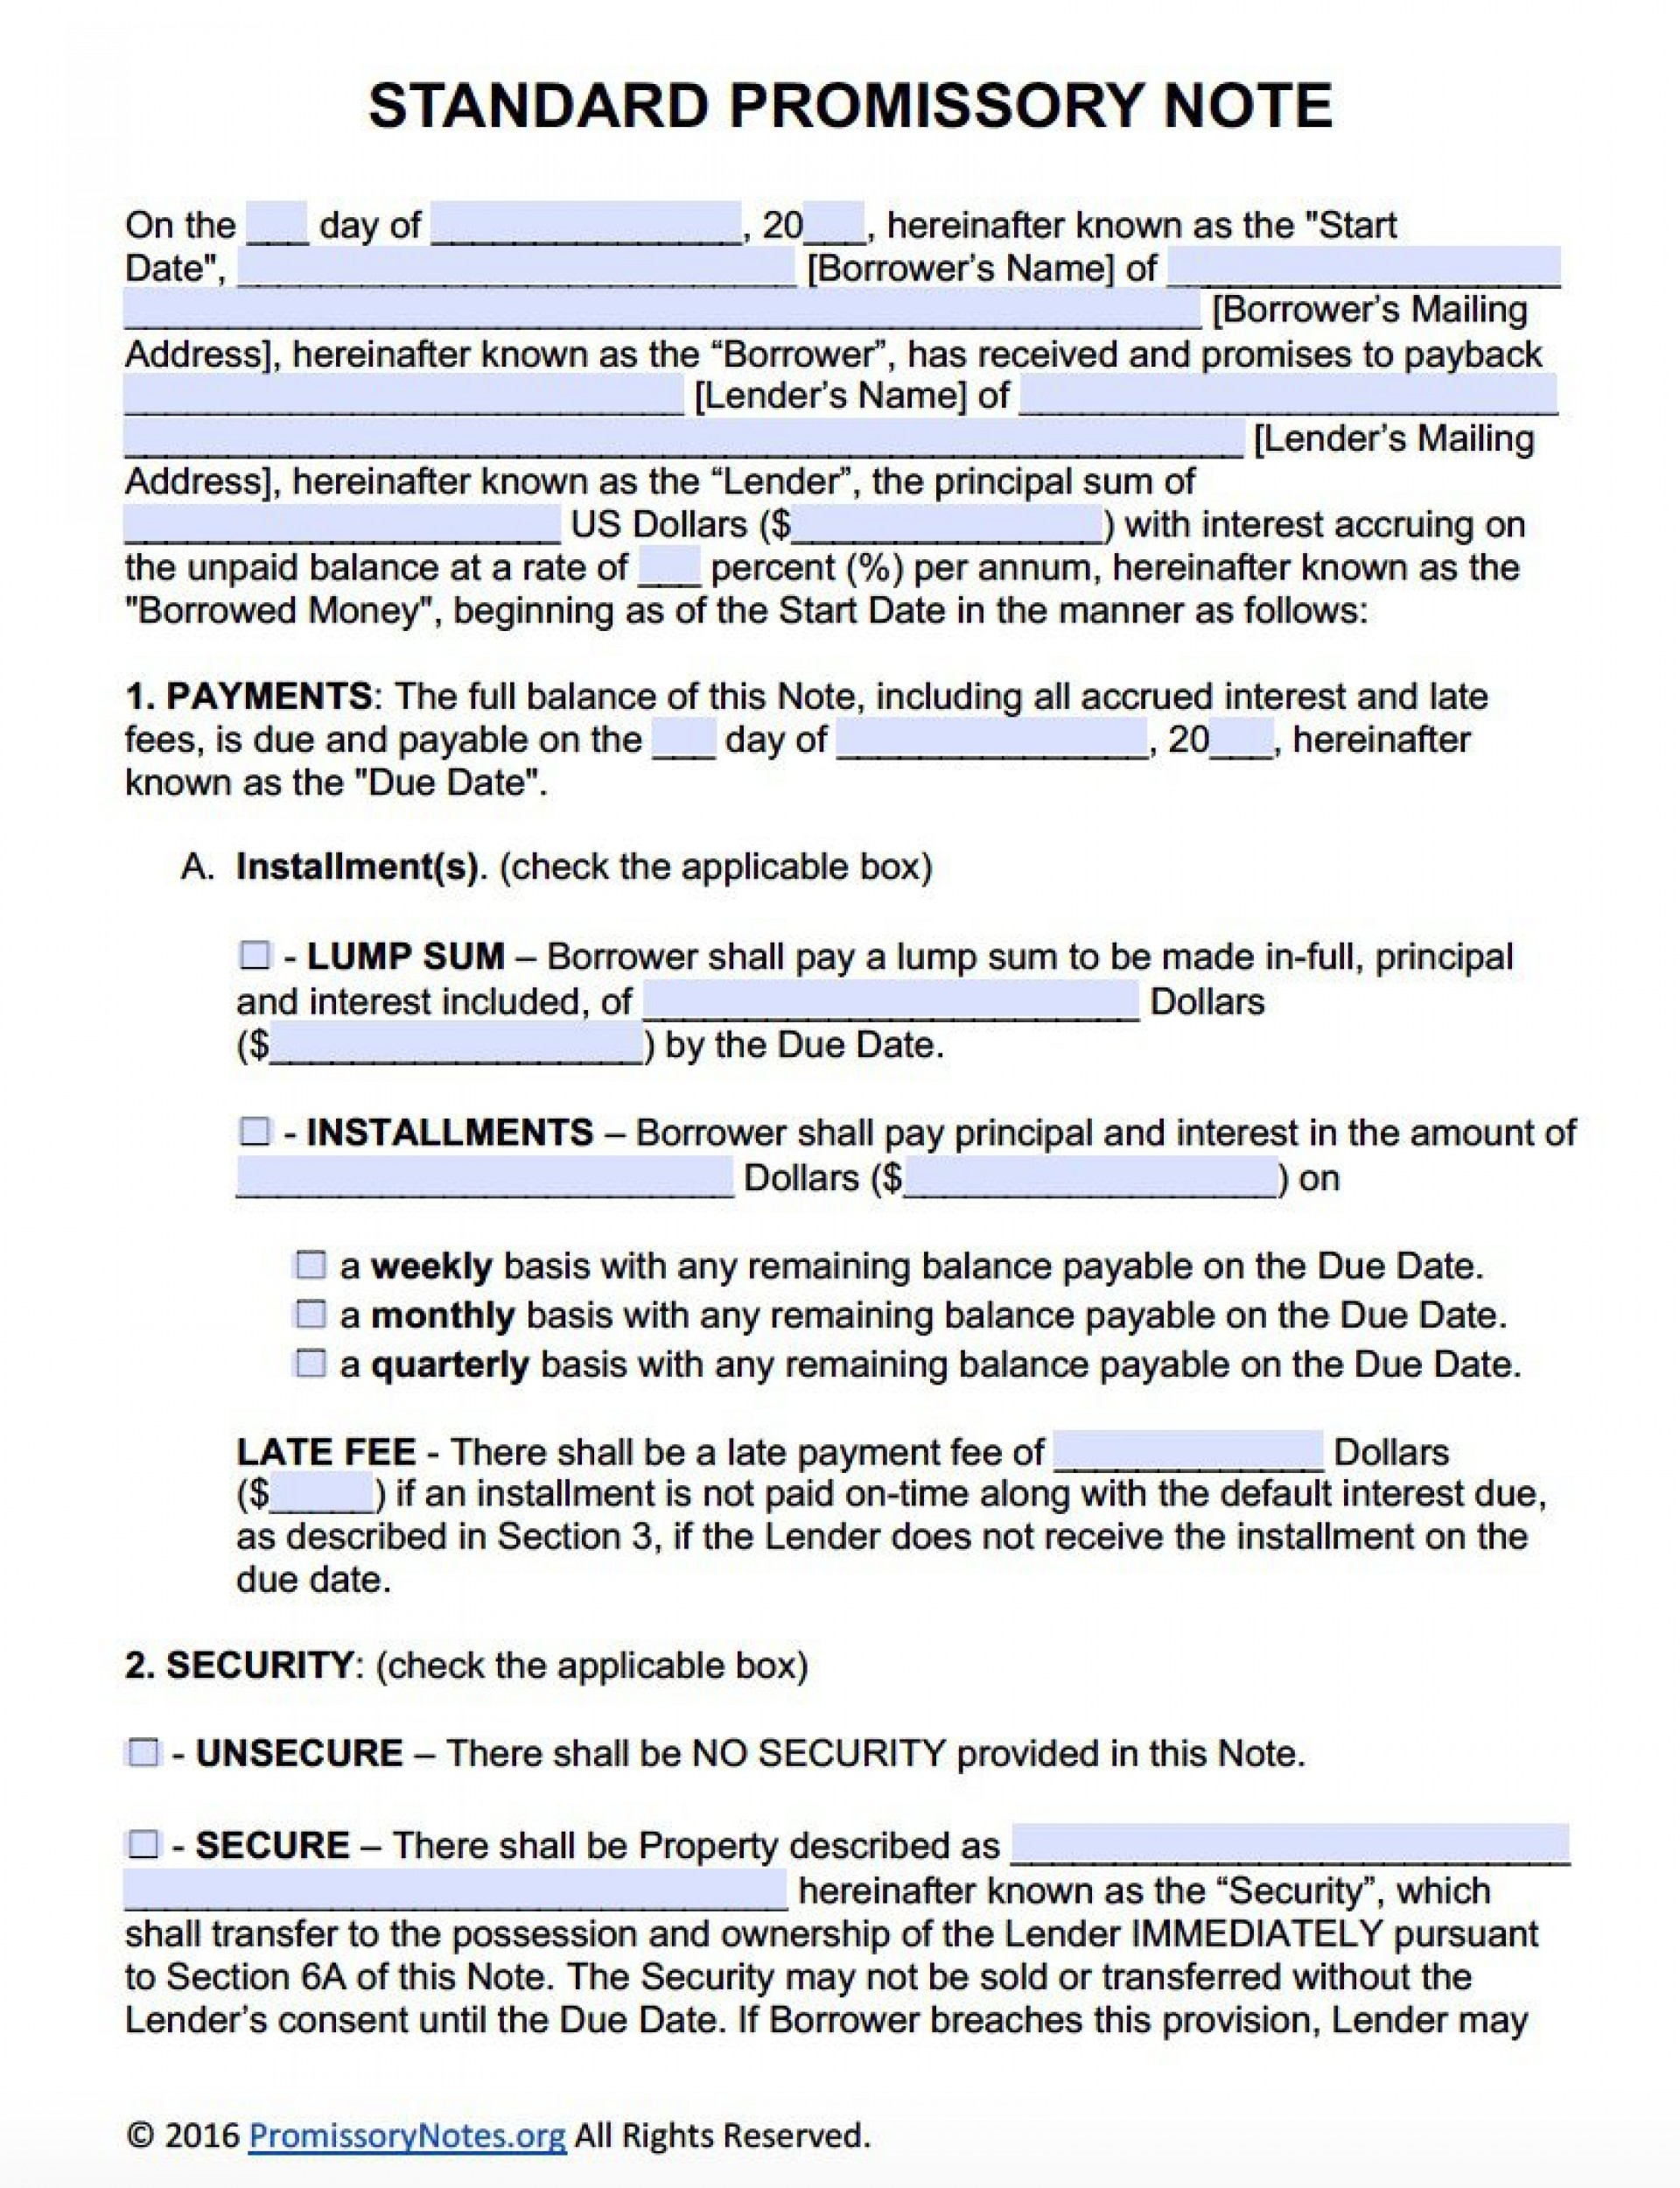 009 Staggering Promissory Note Template Free Image  Pdf Florida Blank Form1920